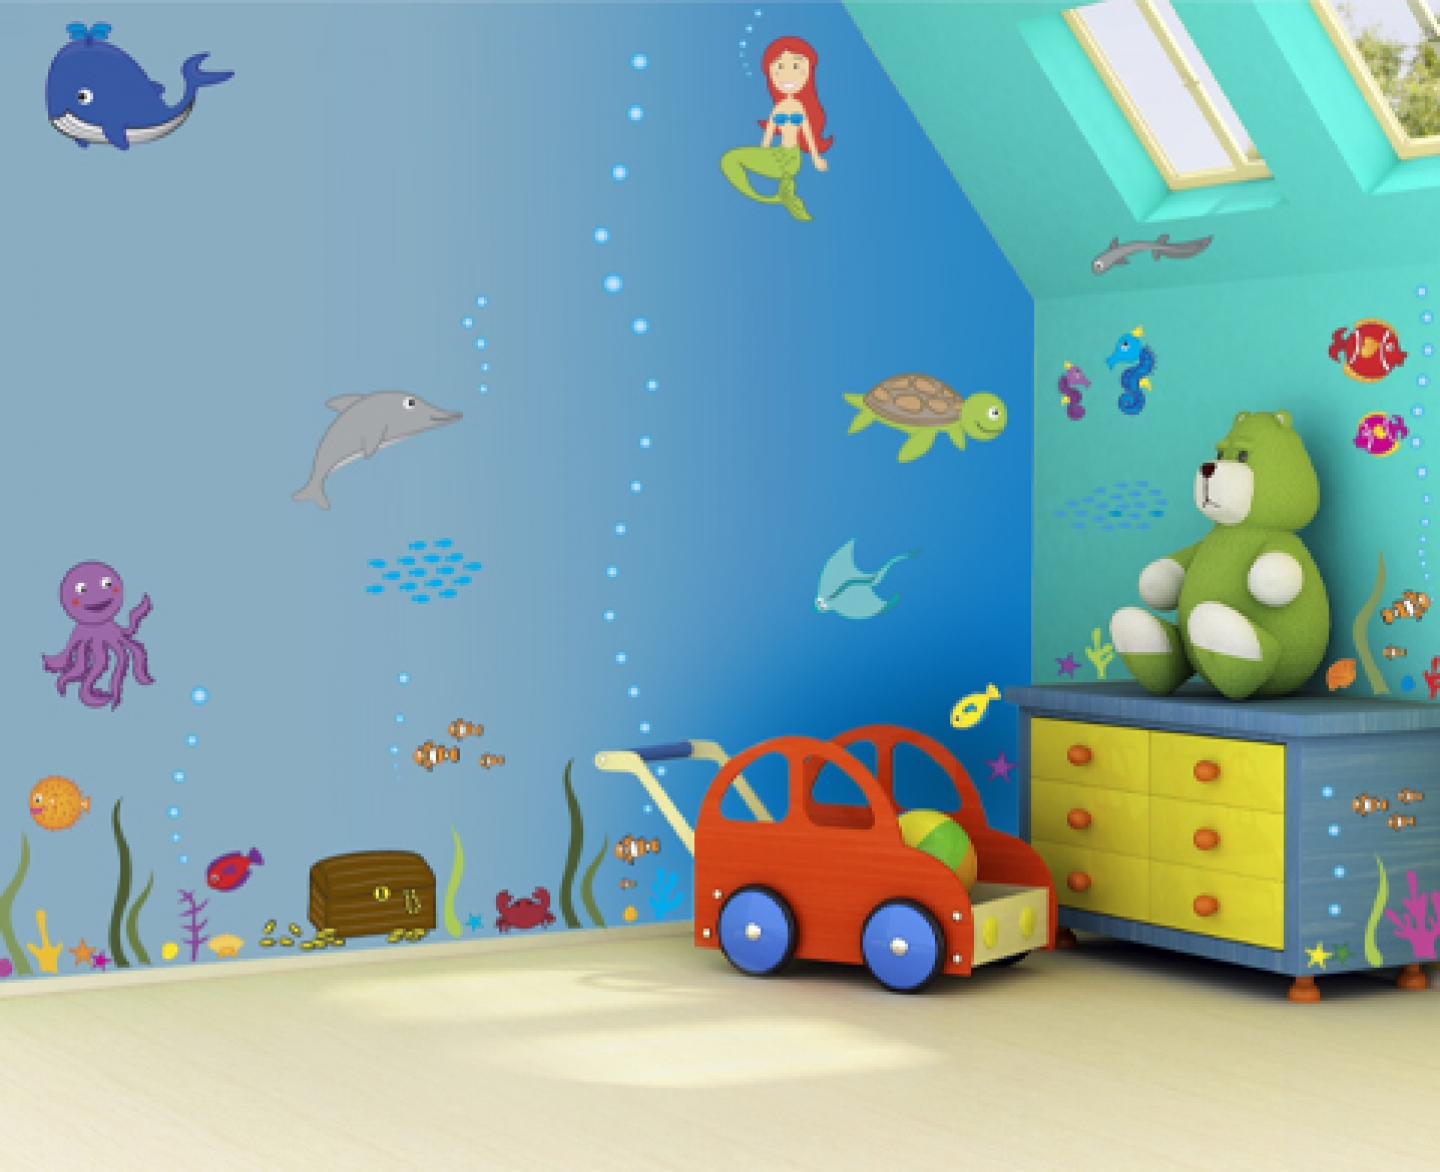 Home decor painting ideas home designer for Children wall mural ideas